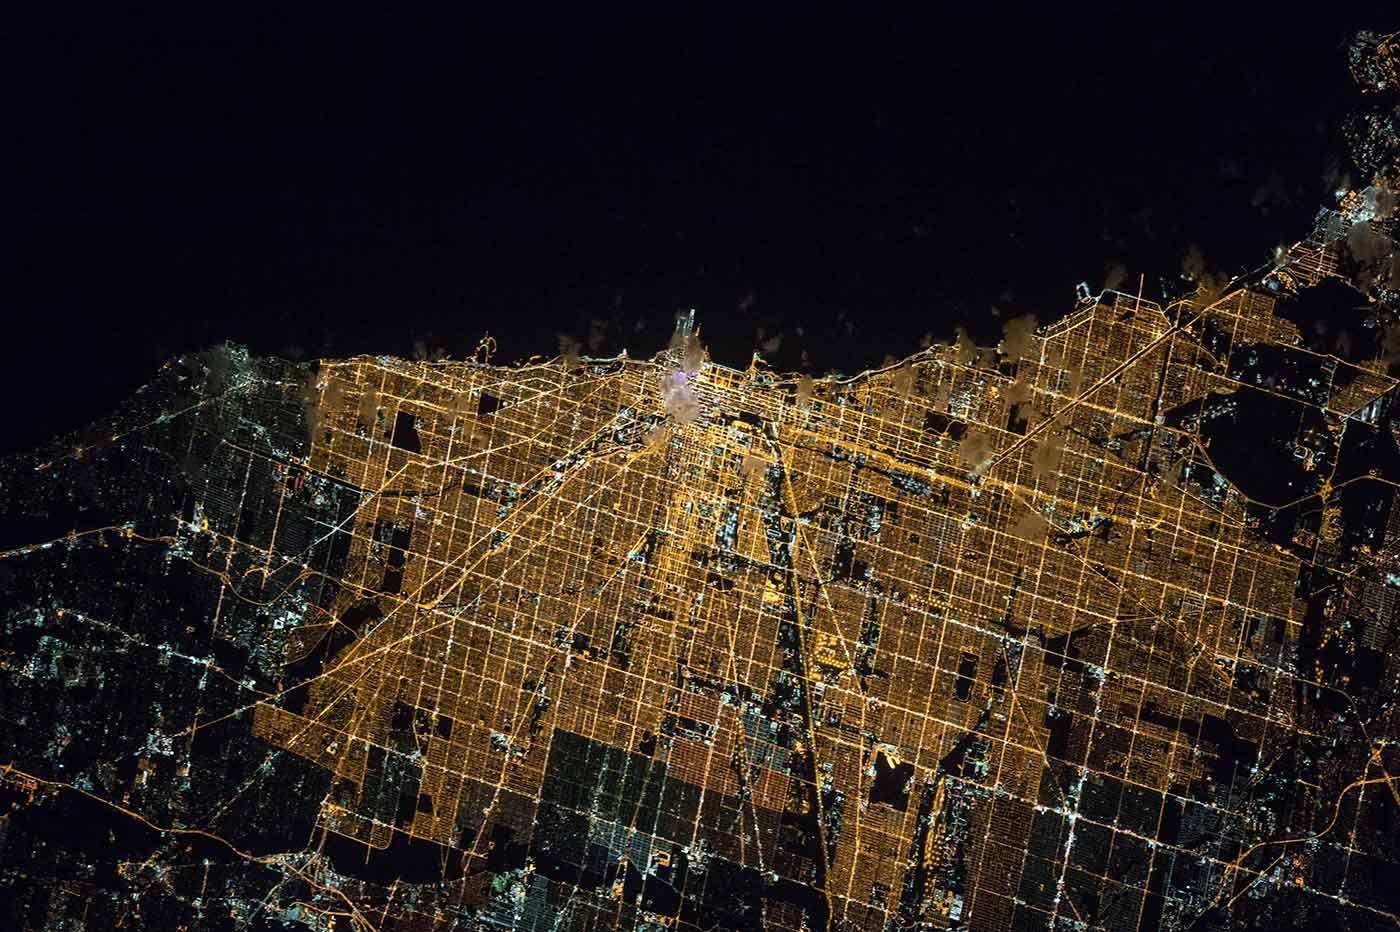 Expedition 47 Commander Tim Kopra of NASA captured this brightly lit night image of the city of Chicago on April 5, 2016, from the International Space Station.